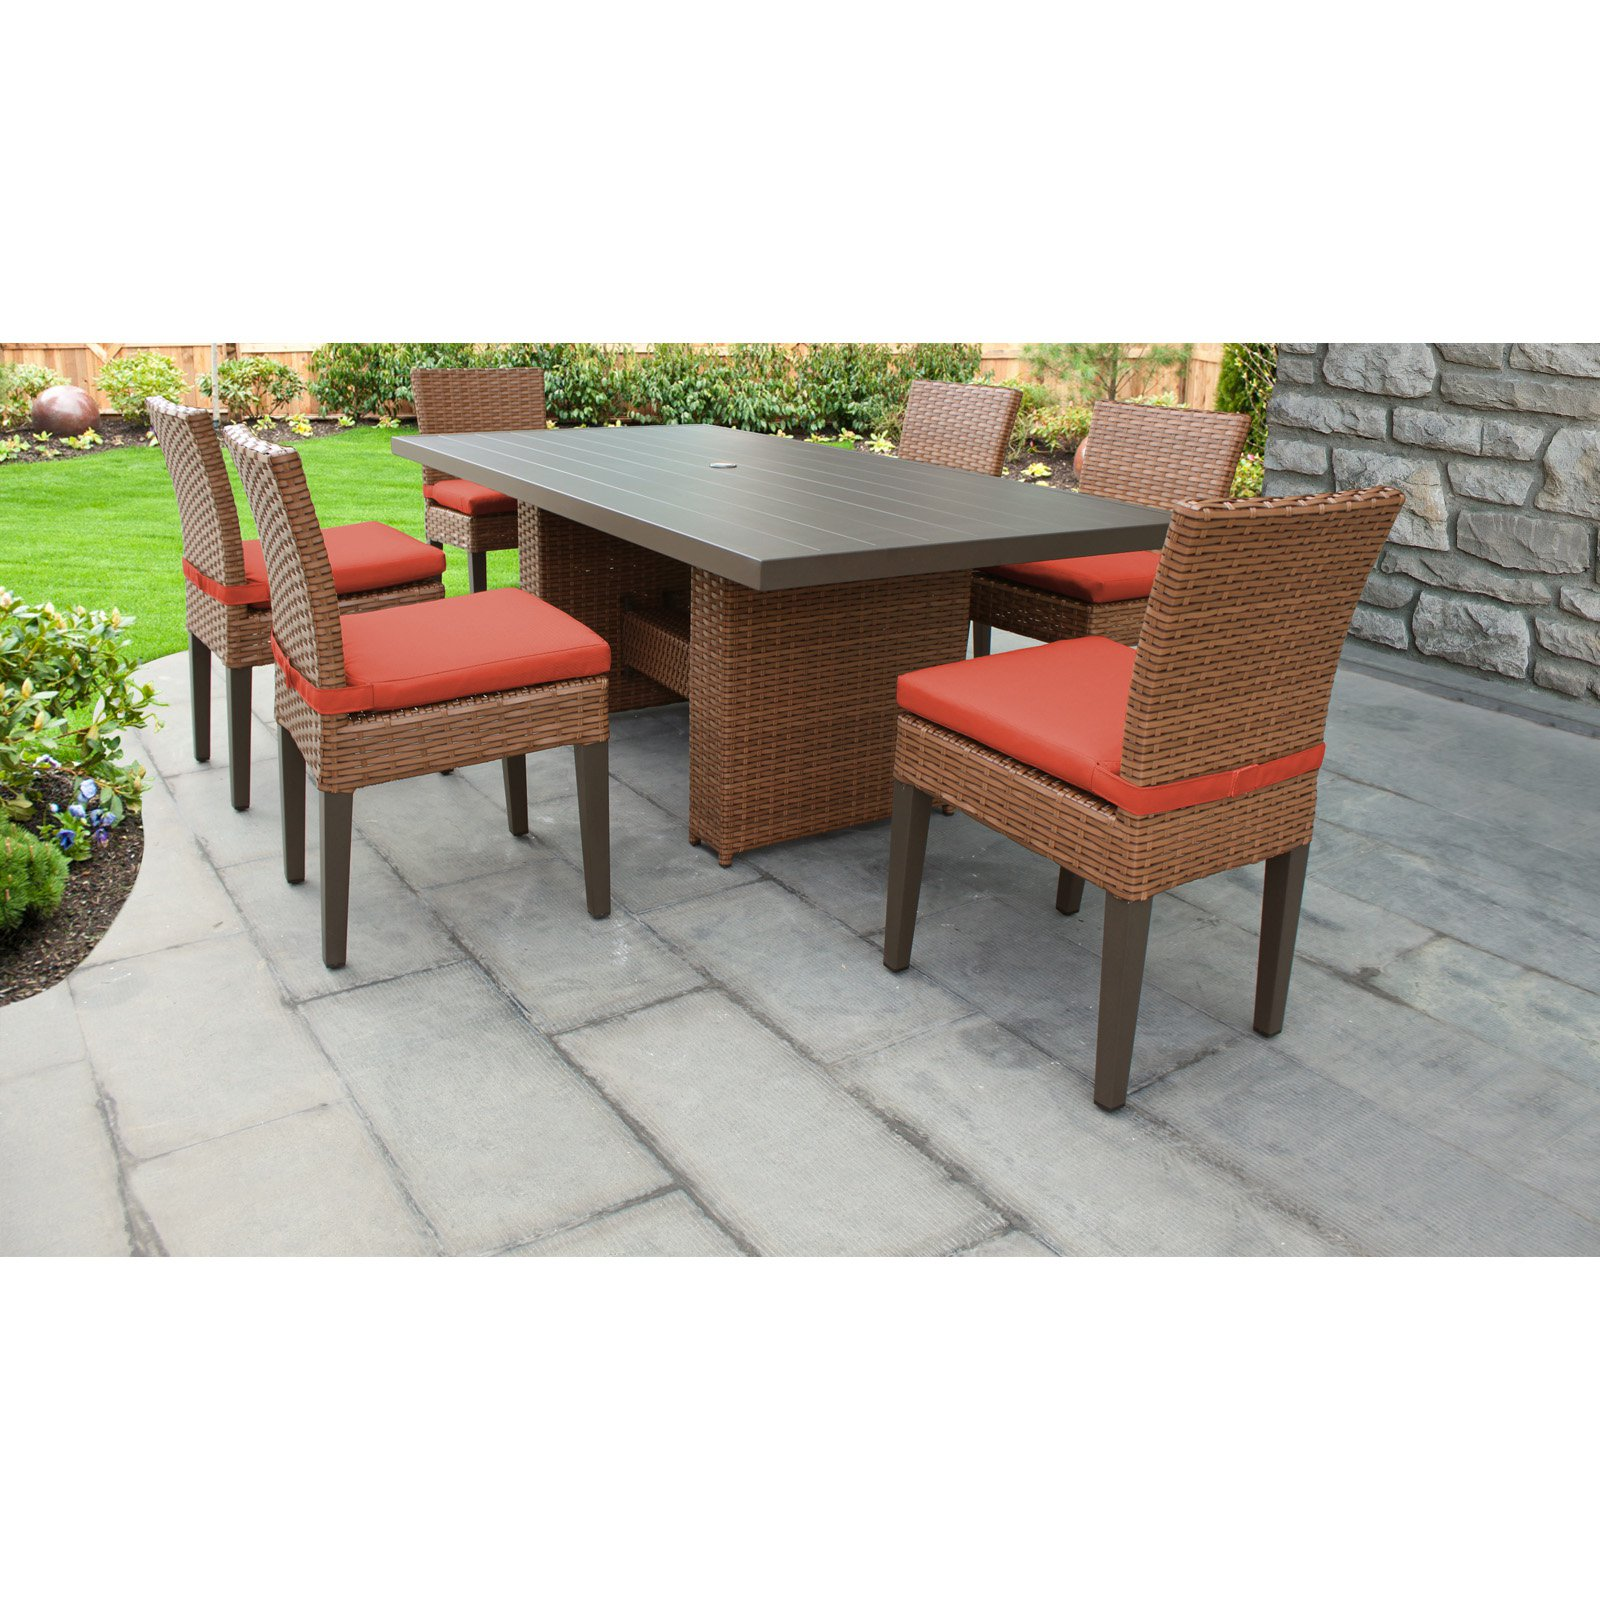 TK Classics Laguna Wicker 7 Piece Patio Dining Set with Armless Chairs